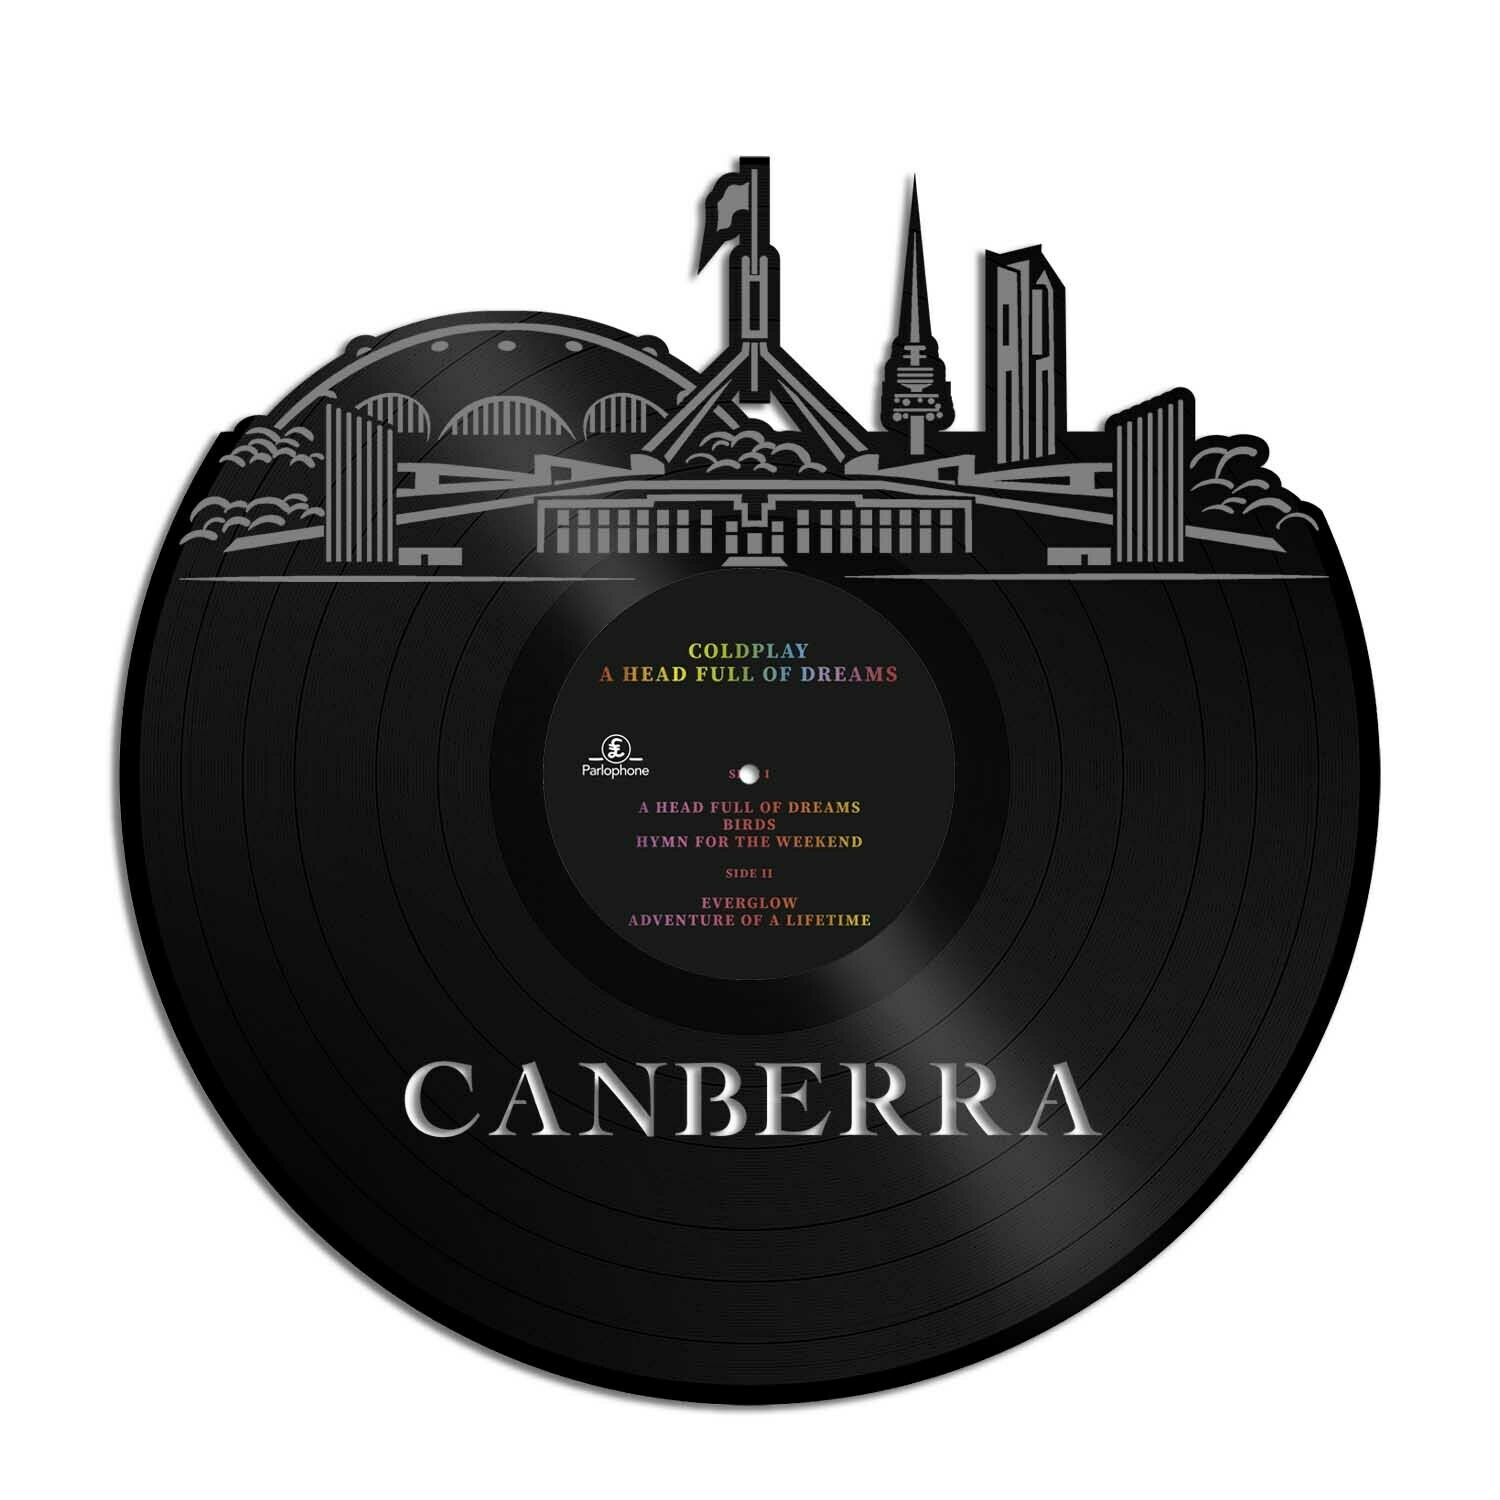 Details about canberra vinyl wall art cityscape souvenir anniversary office home room decor